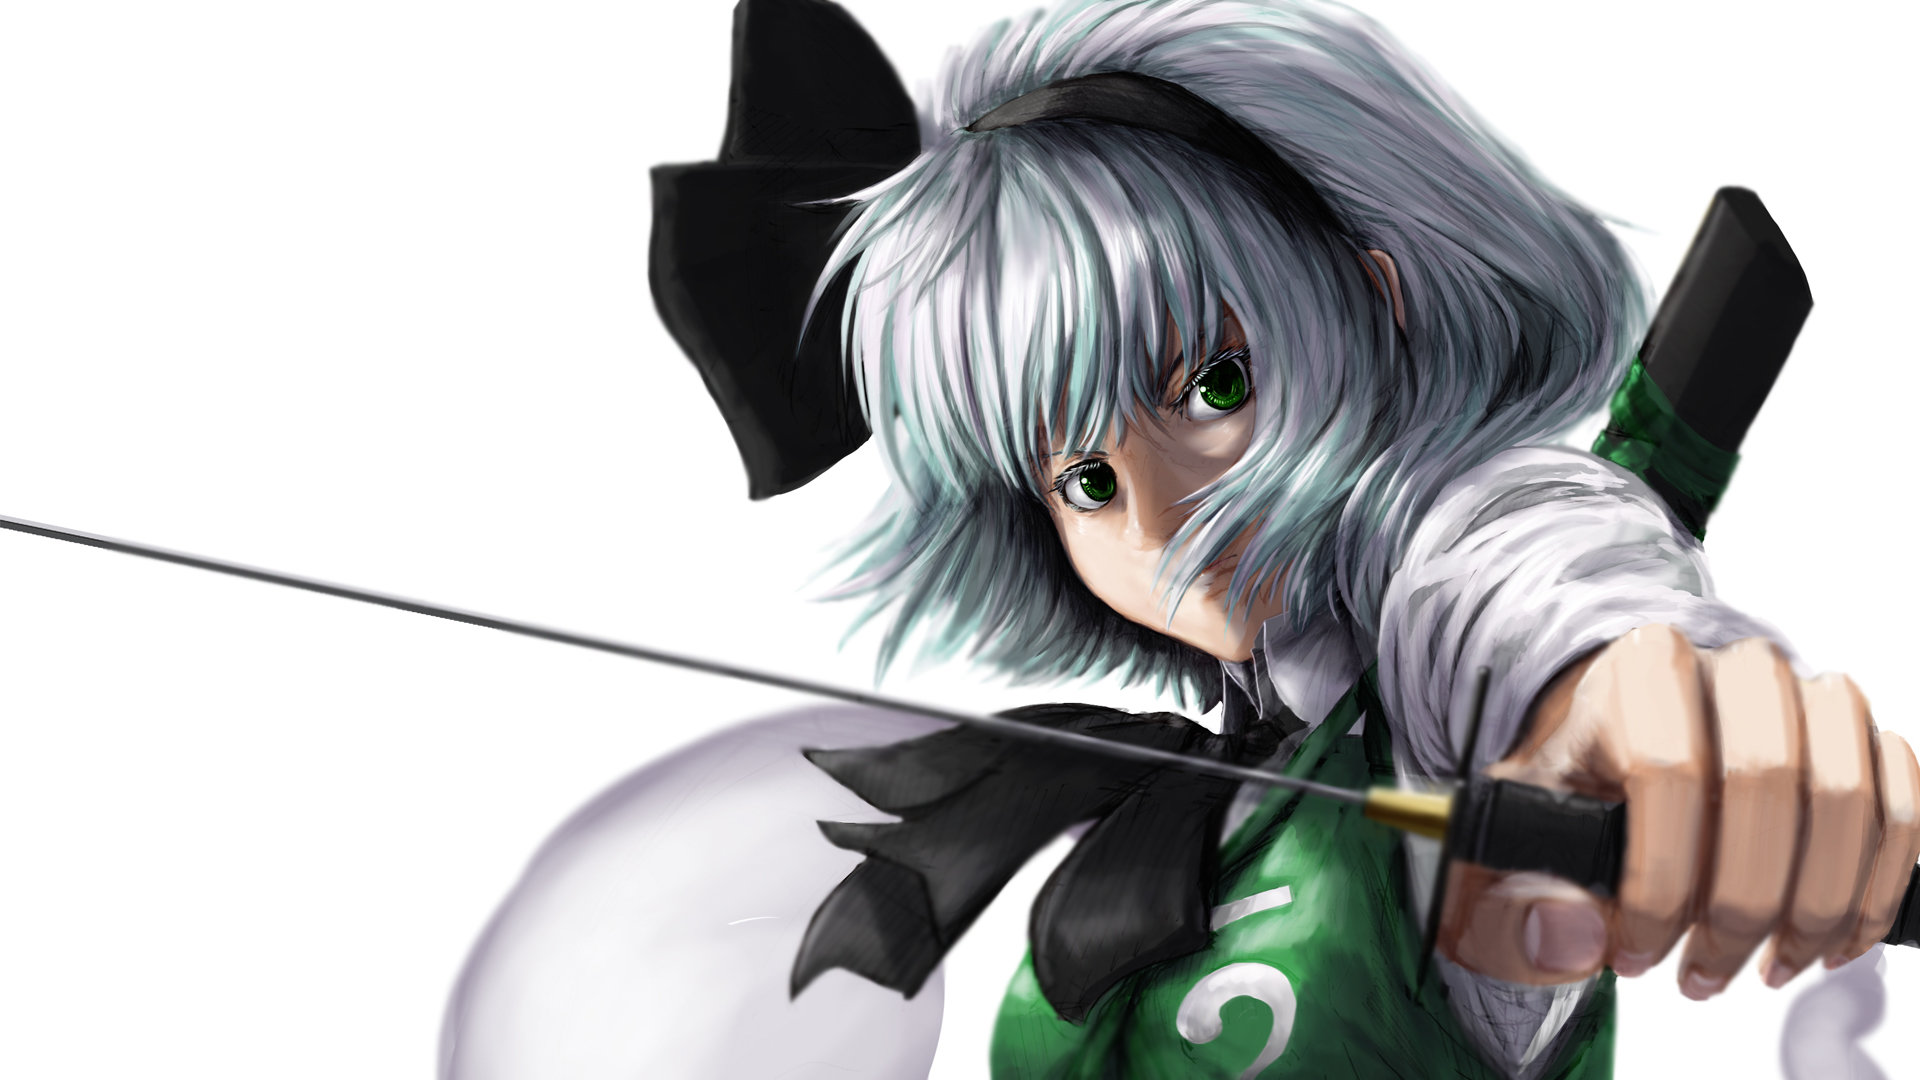 Free download Youmu Konpaku background ID:222111 full hd 1920x1080 for computer